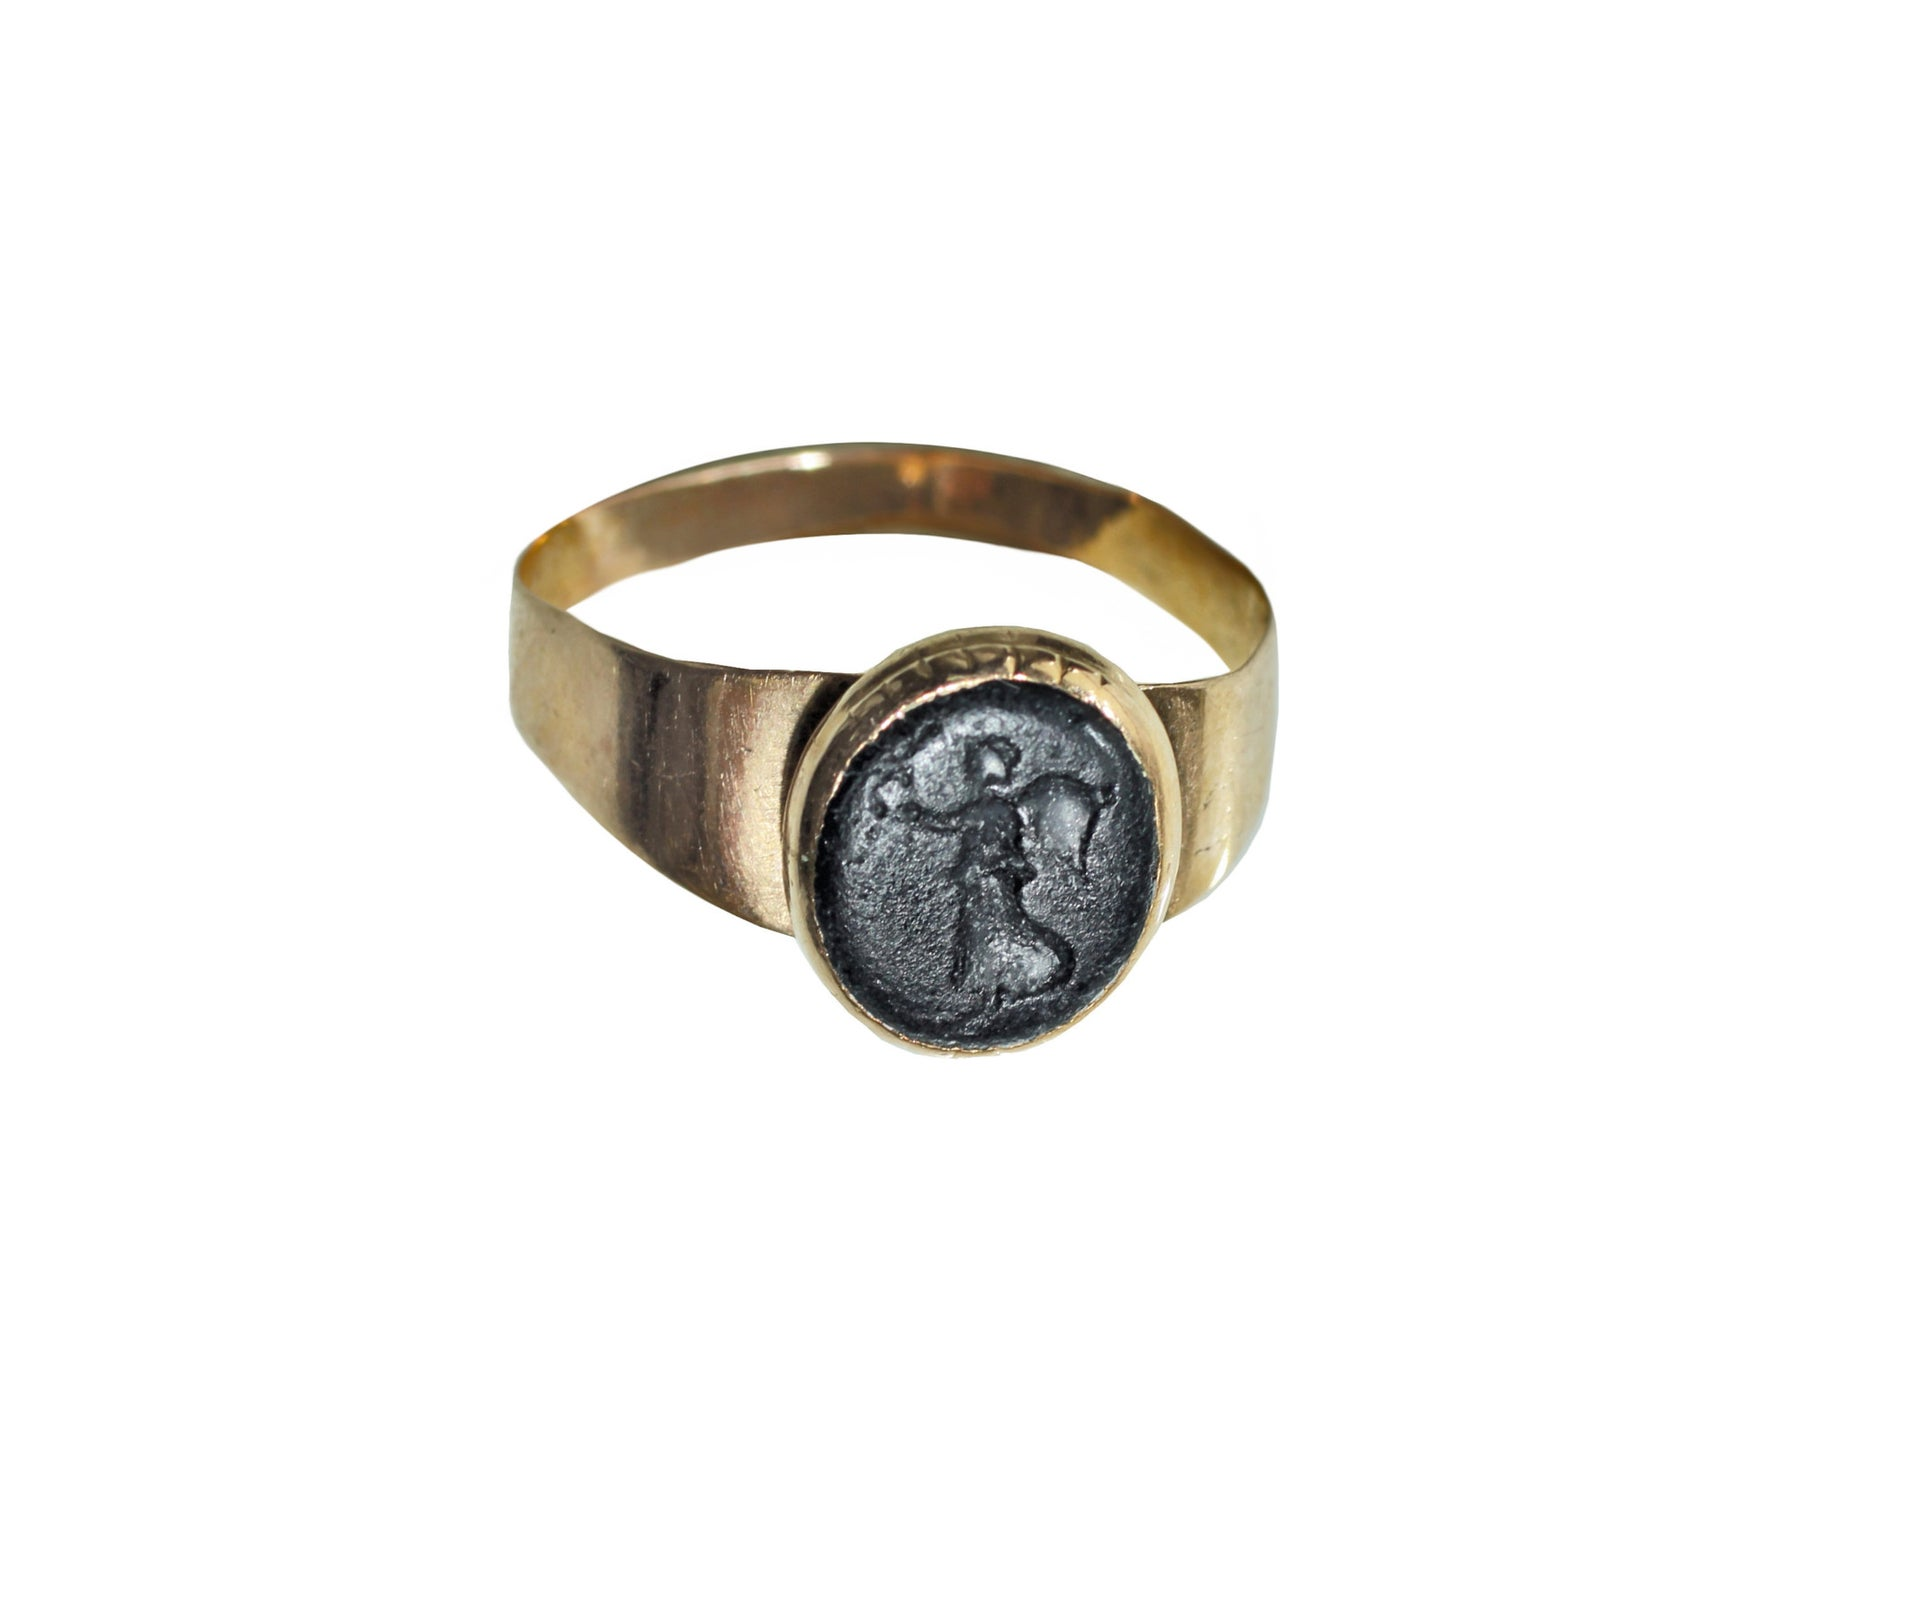 The ring Freud gave the analyst Eva Rosenfeld, also bearing the image of the goddess Nike.